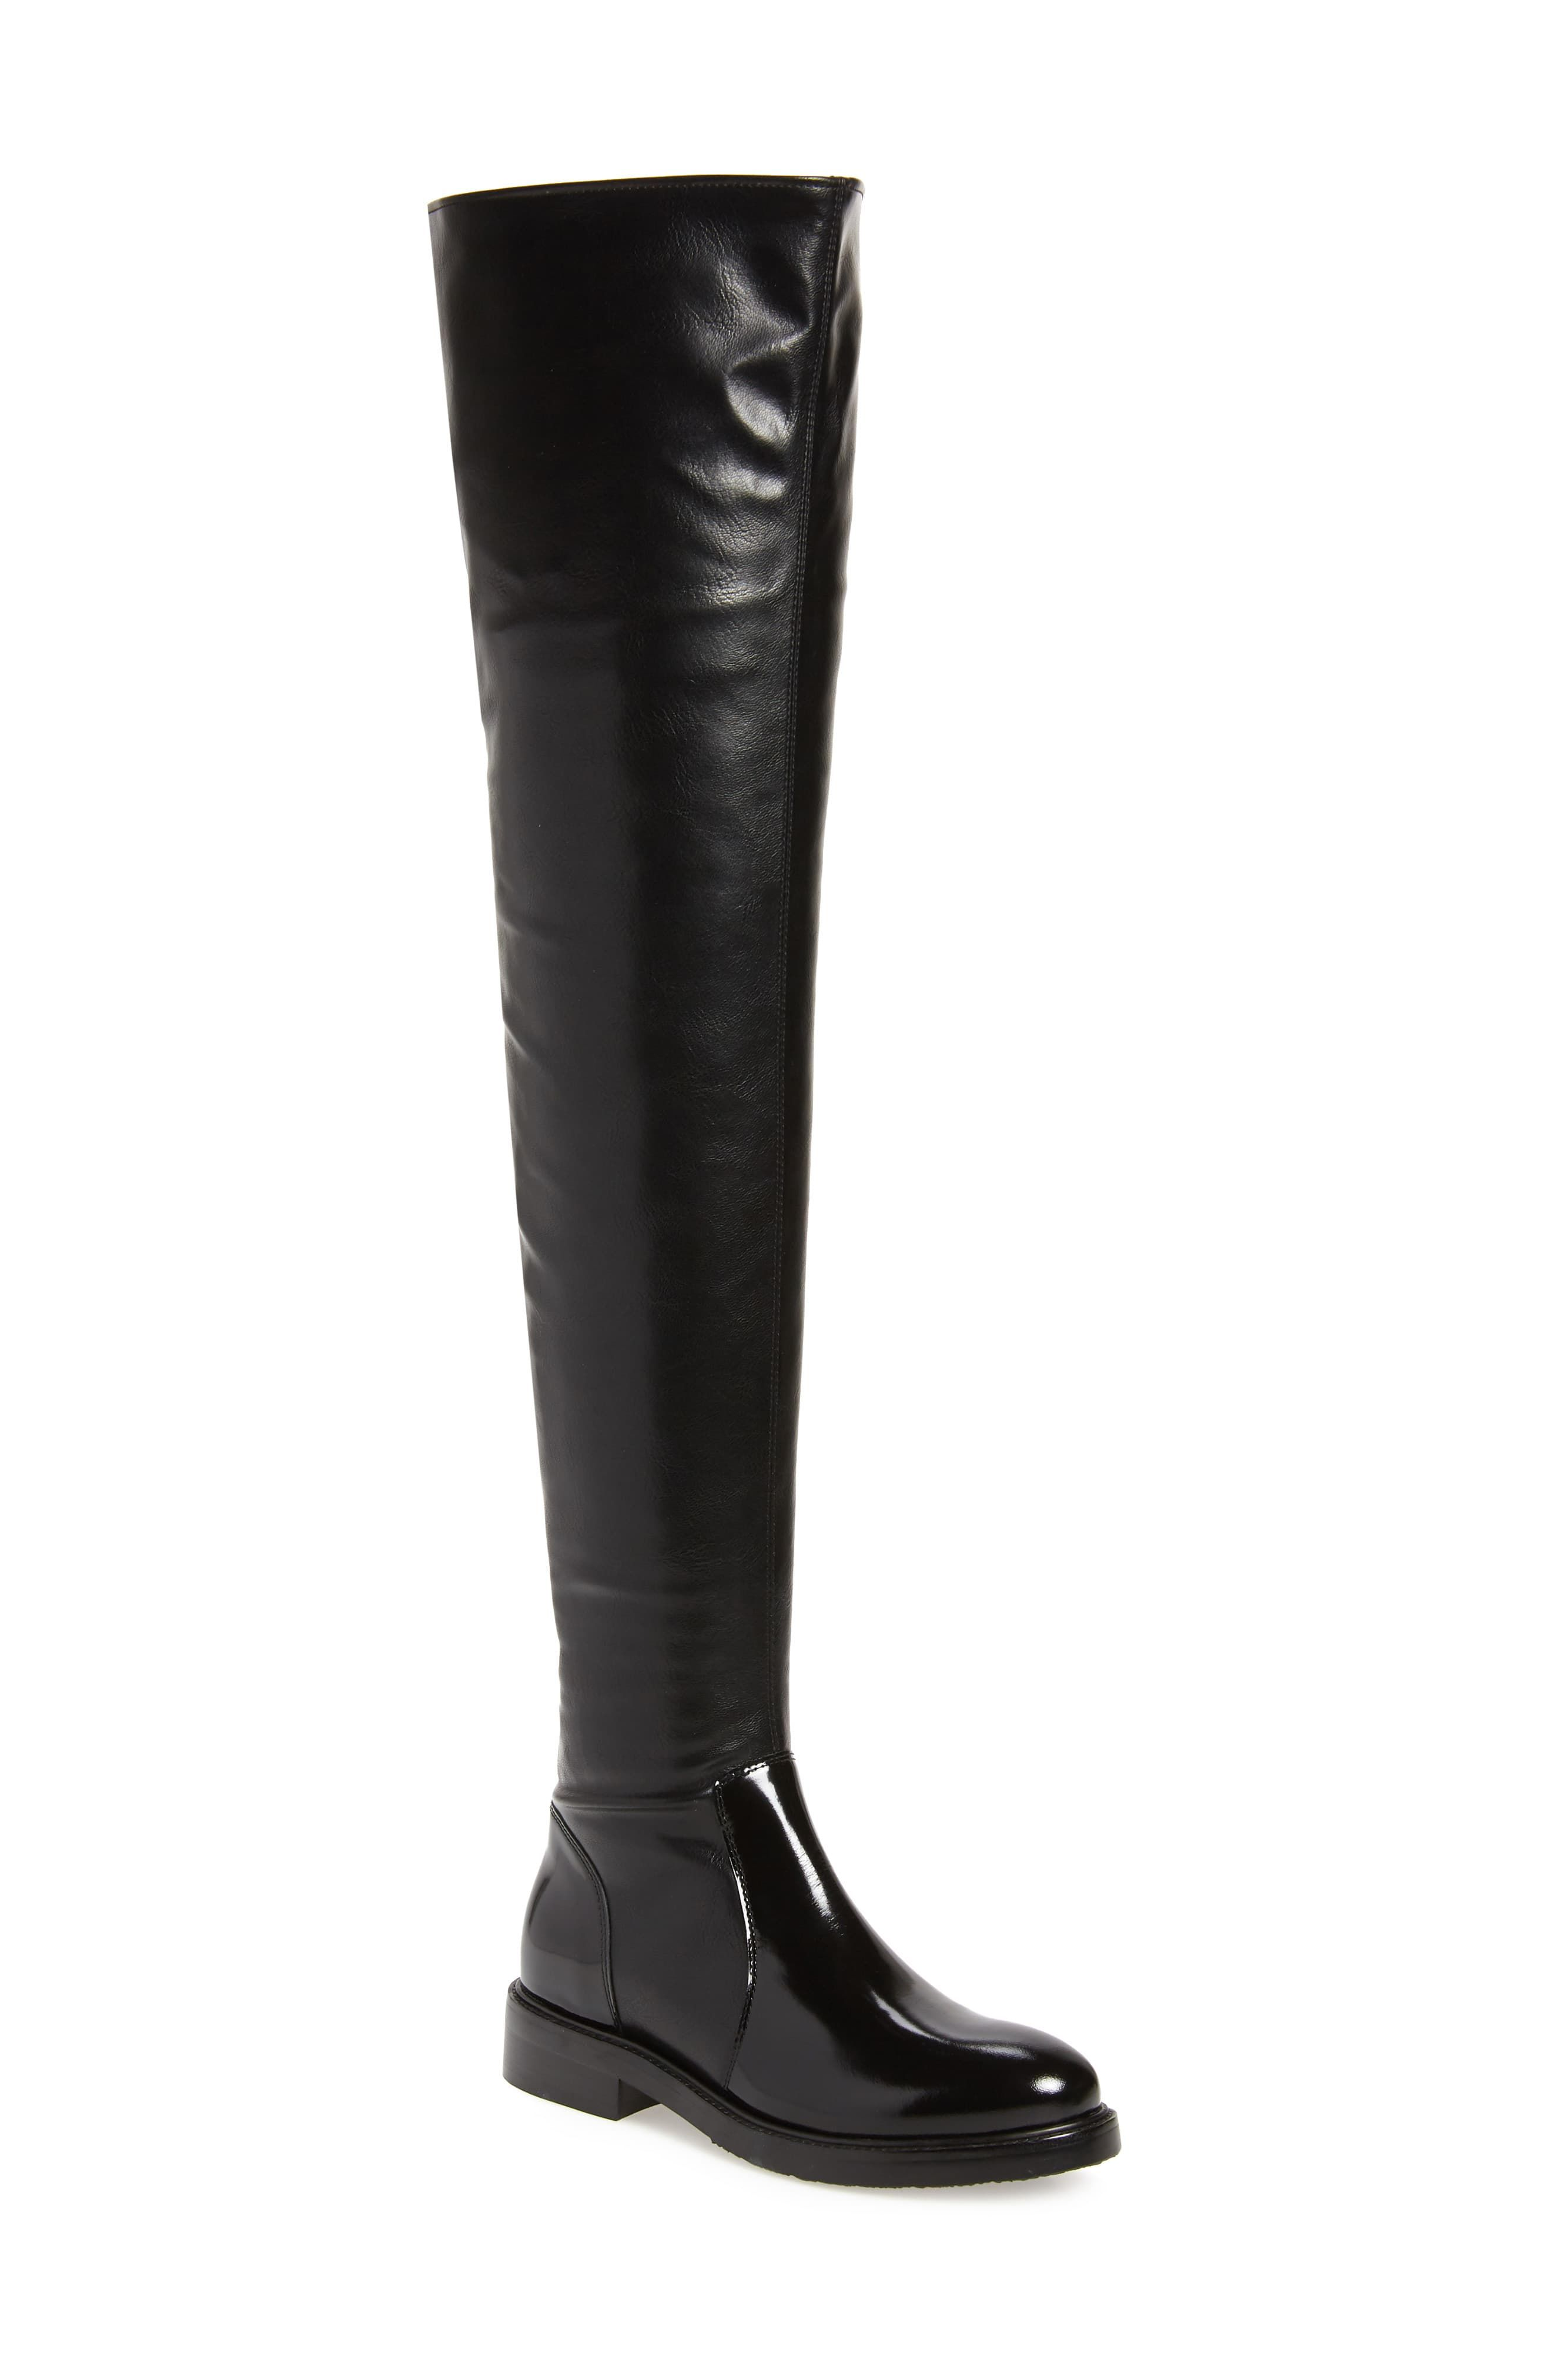 Womens knee high boots shiny Leather pull on Low heel Motor shoes Plus SZ Casual